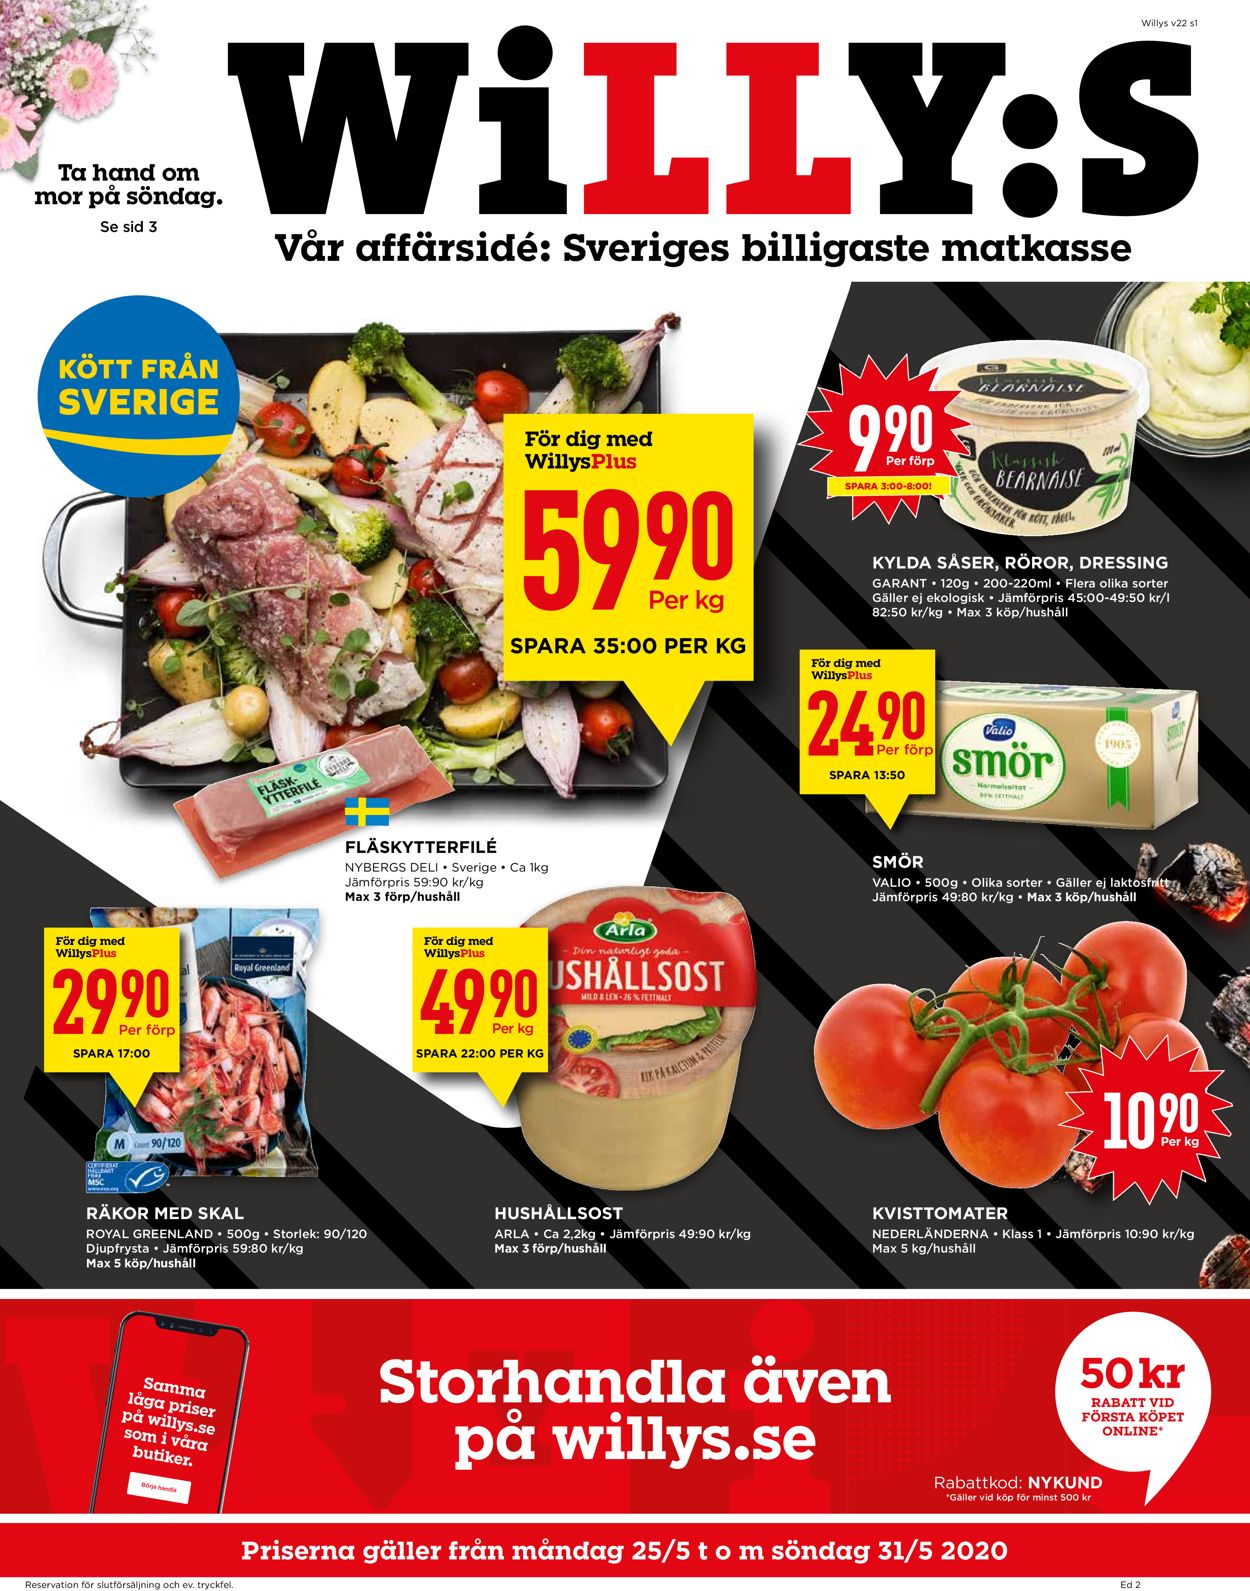 Reklamblad WiLLY:S från 25/05-2020